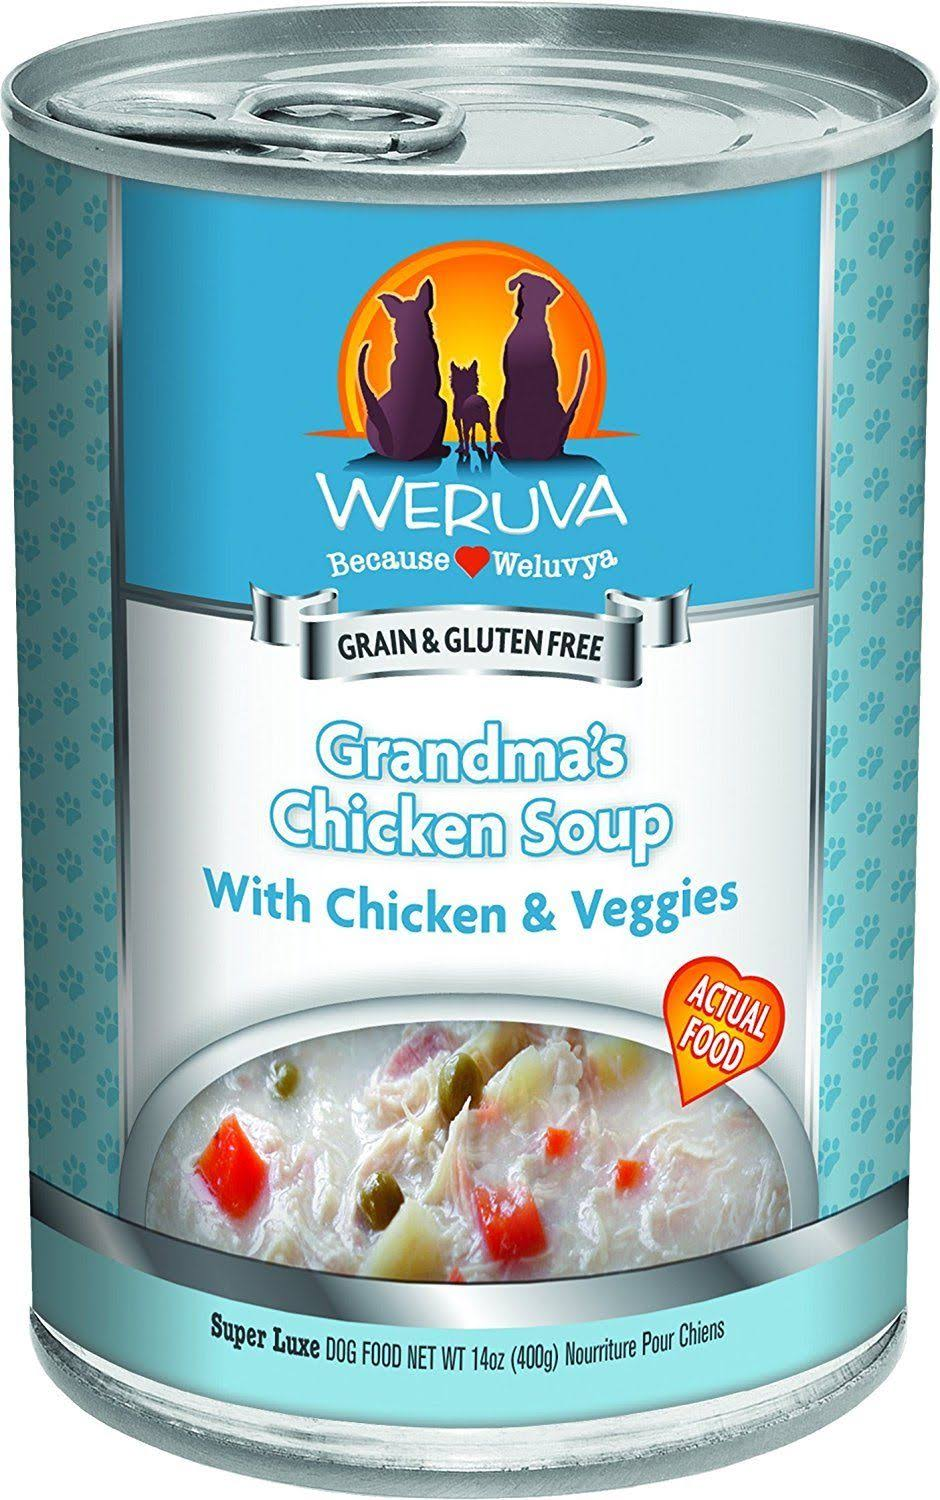 Weruva Grain Free Canned Dog Food - Grandma's Chicken Soup, Adult, 14oz